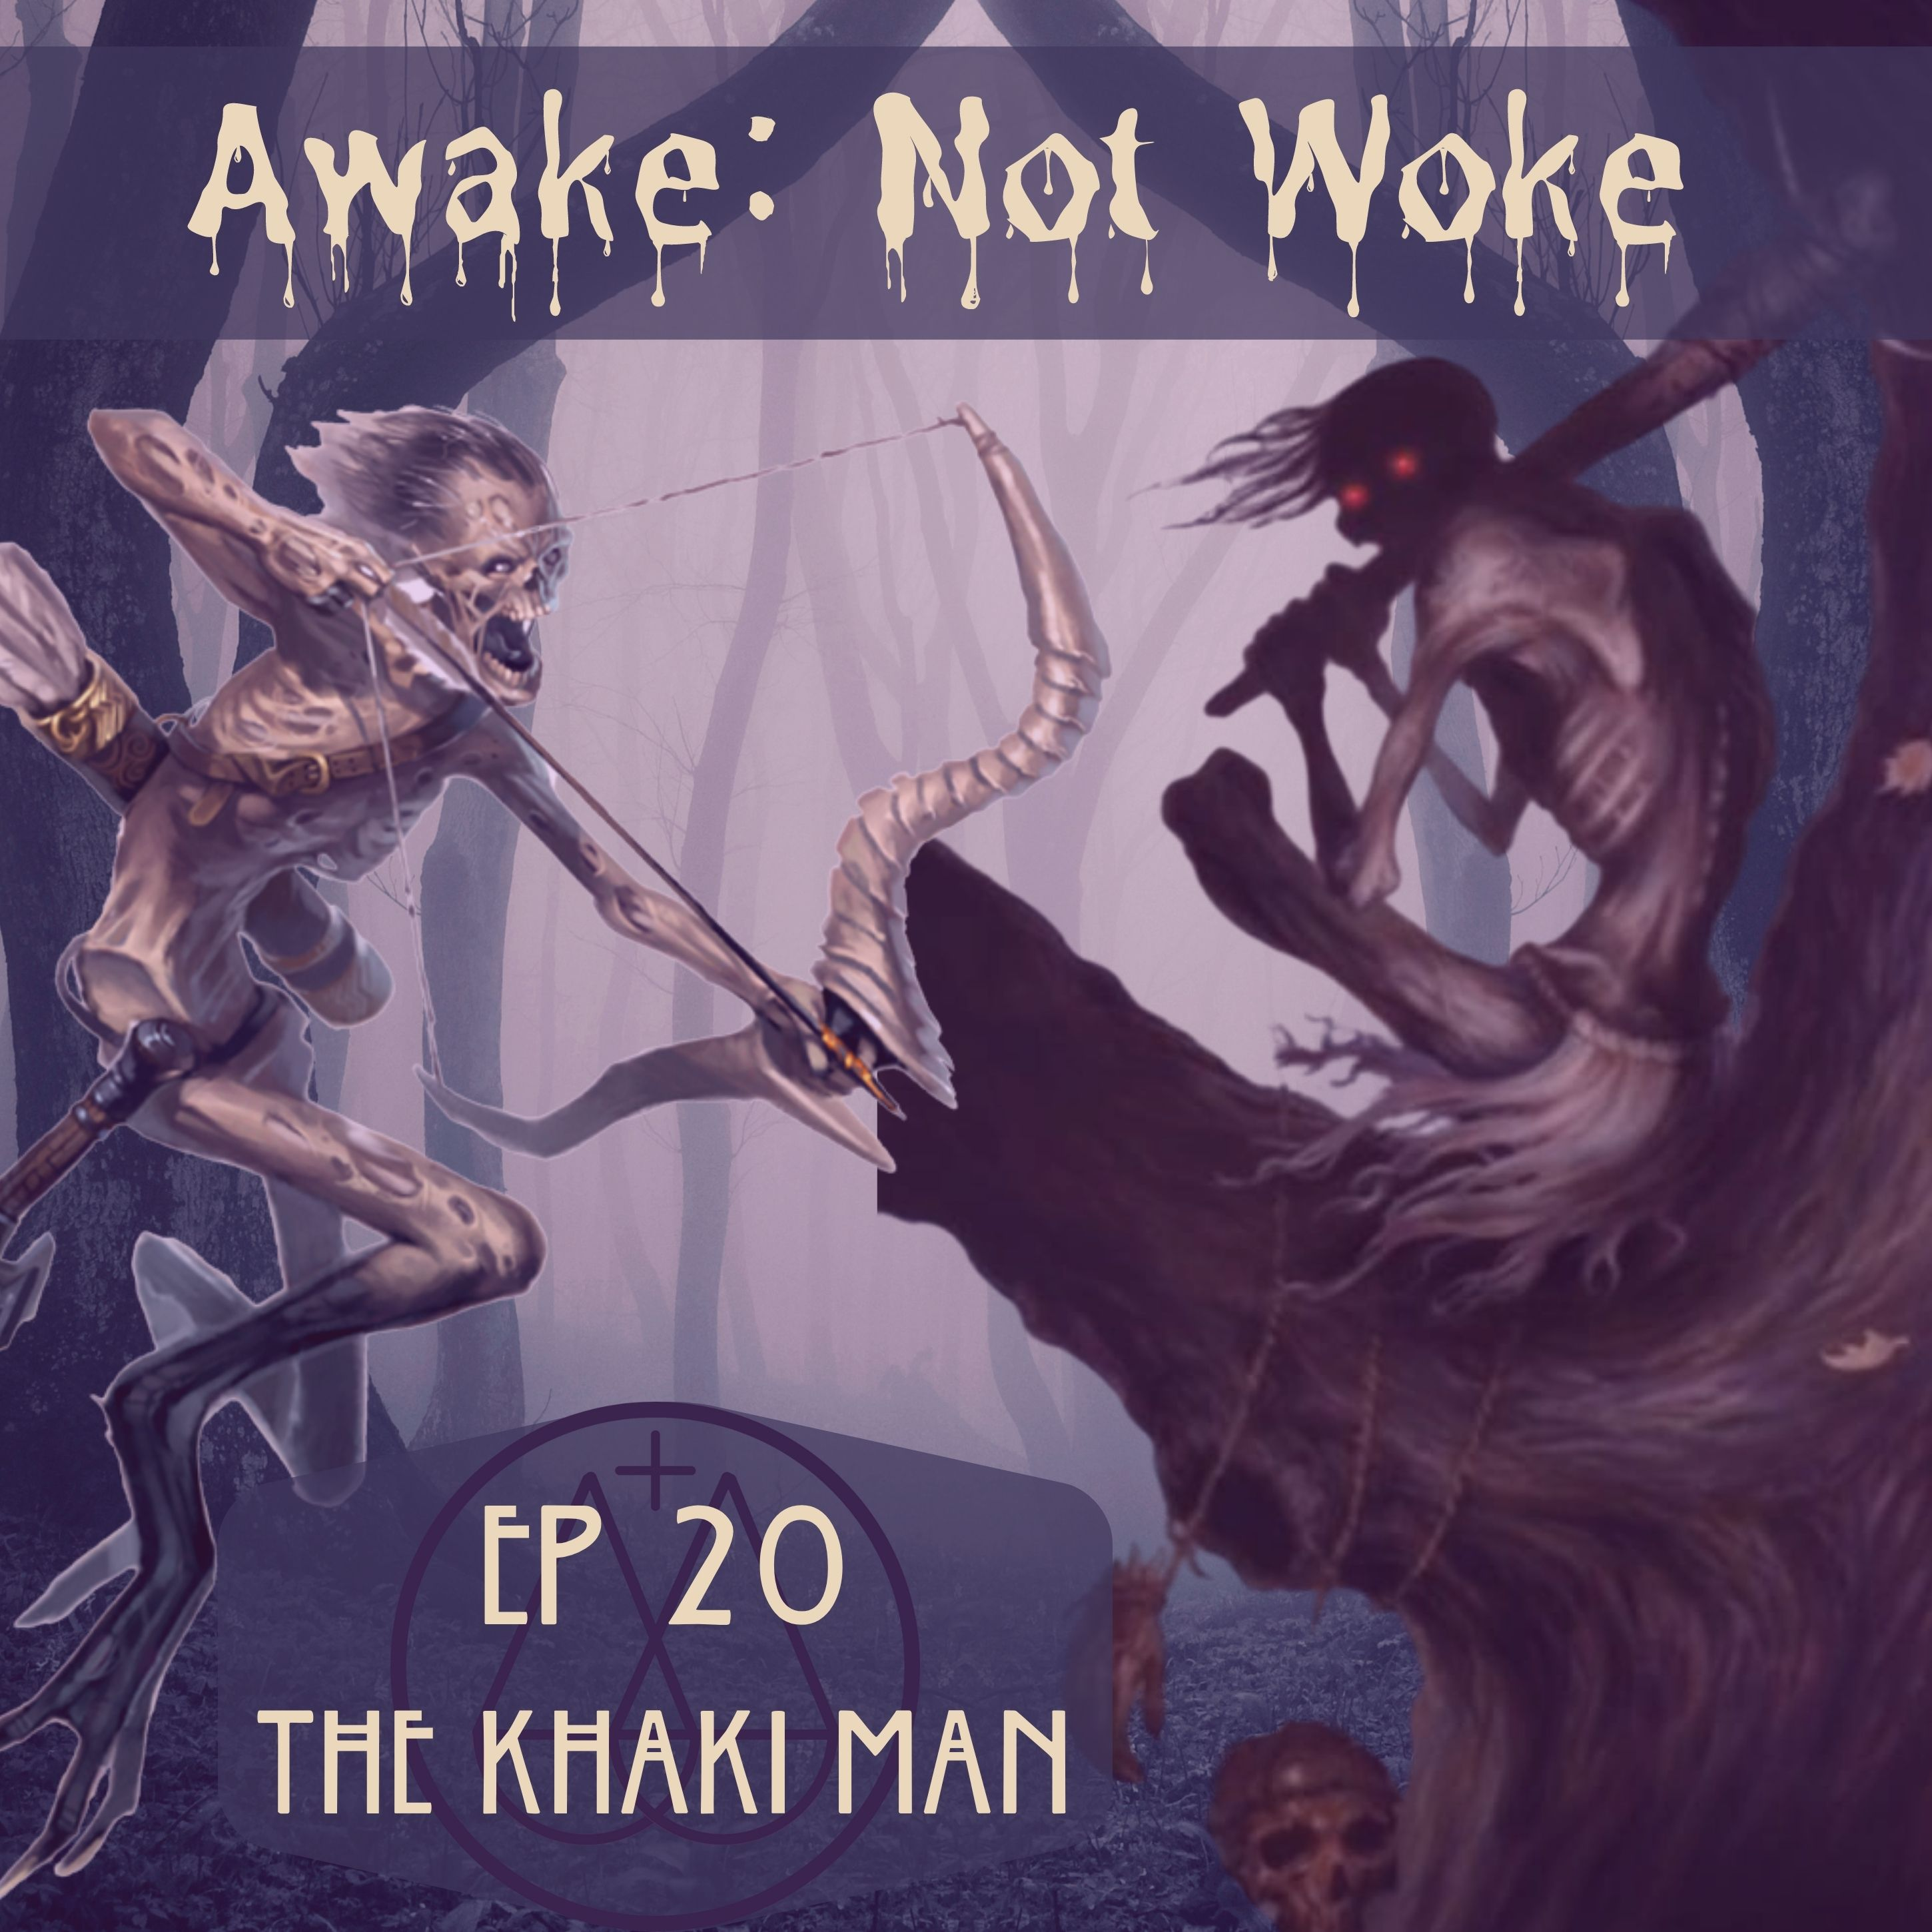 20: The Khaki Man – Skinwalkers but Not Really, Navajo & Ojibwa Legends, Creatures of the Great Lakes Region, Native American Medicine Man, & More!